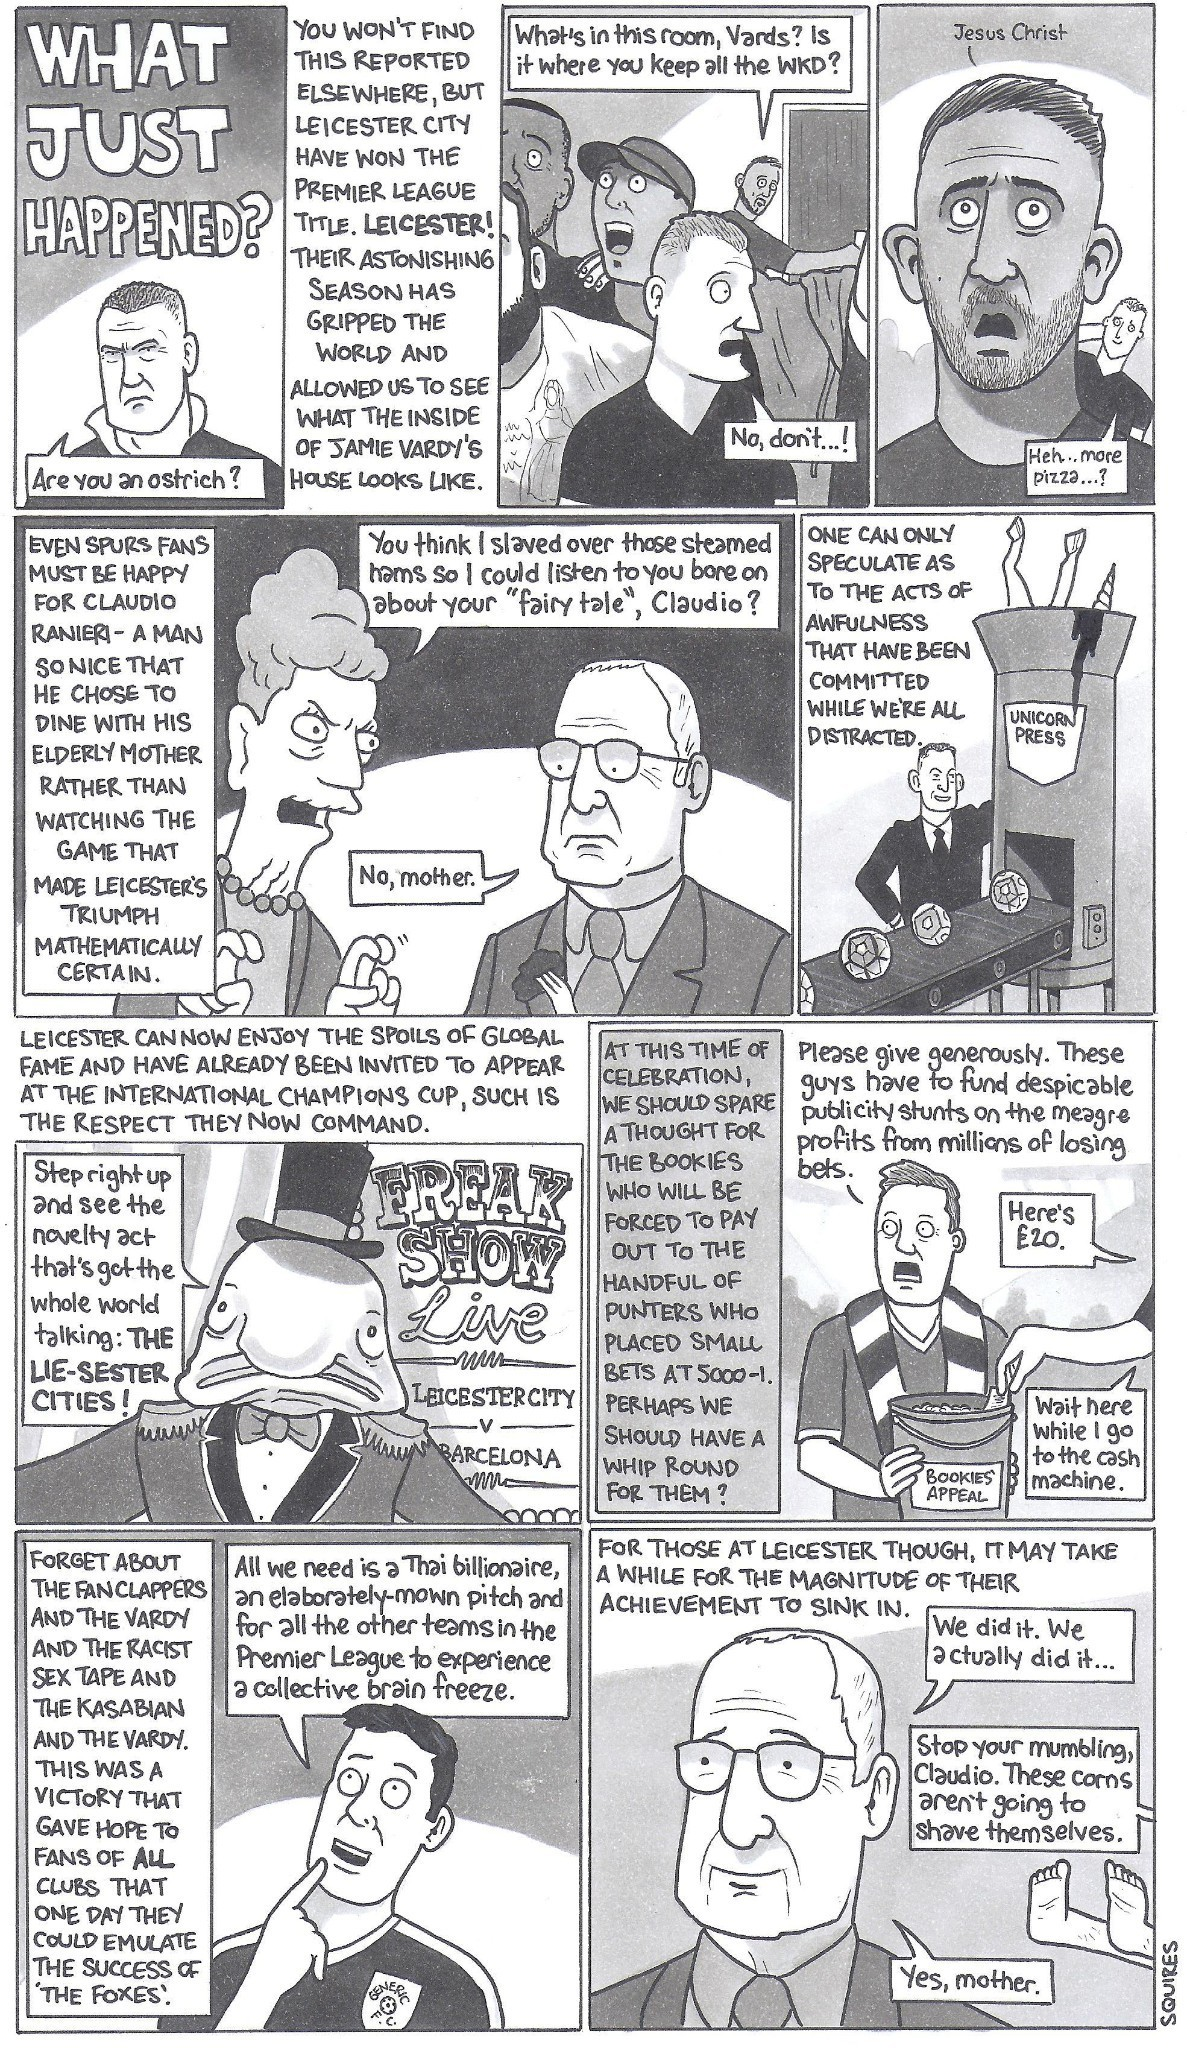 David Squires on … Leicester City winning the Premier League